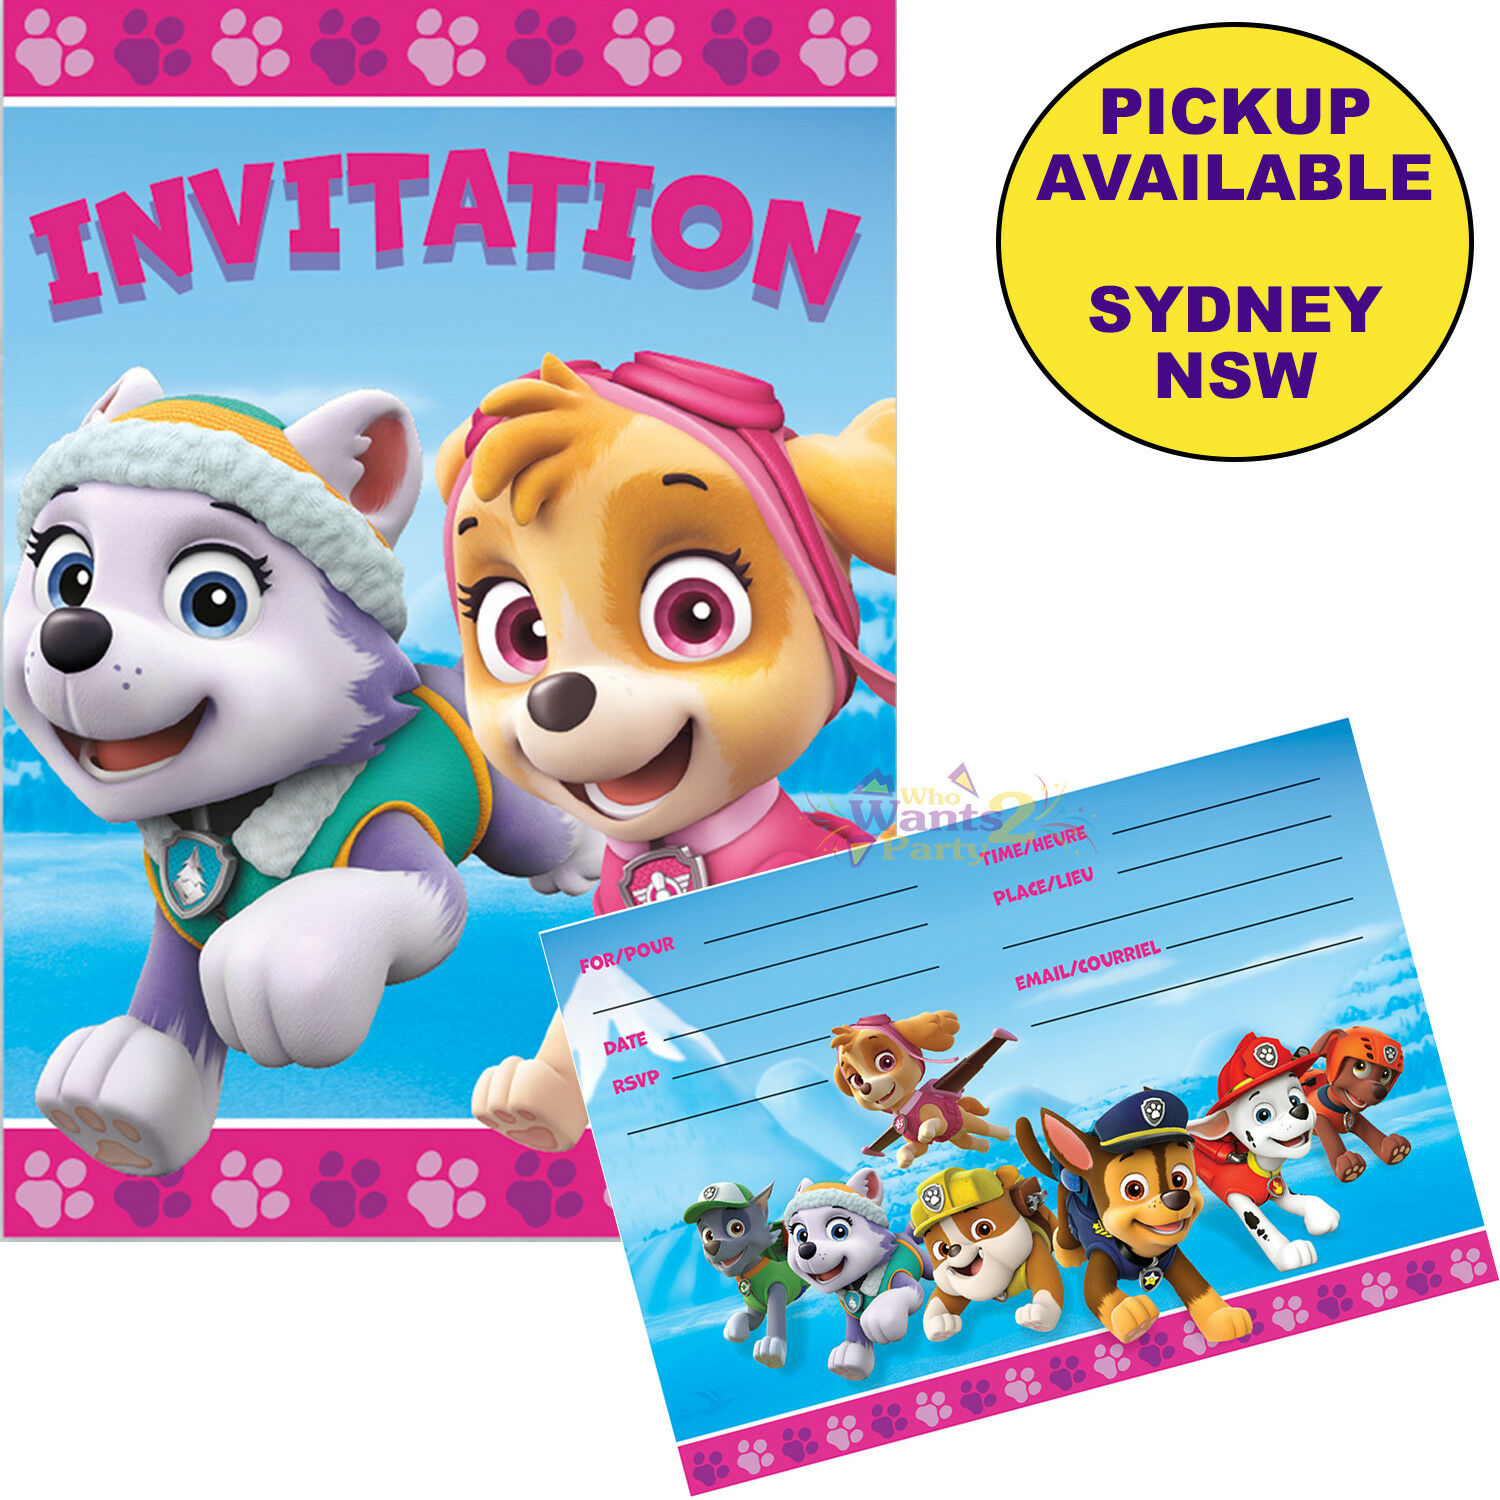 Details About PAW PATROL PINK GIRLS PARTY SUPPLIES 8 INVITATIONS BIRTHDAY INVITES SKYE EVEREST